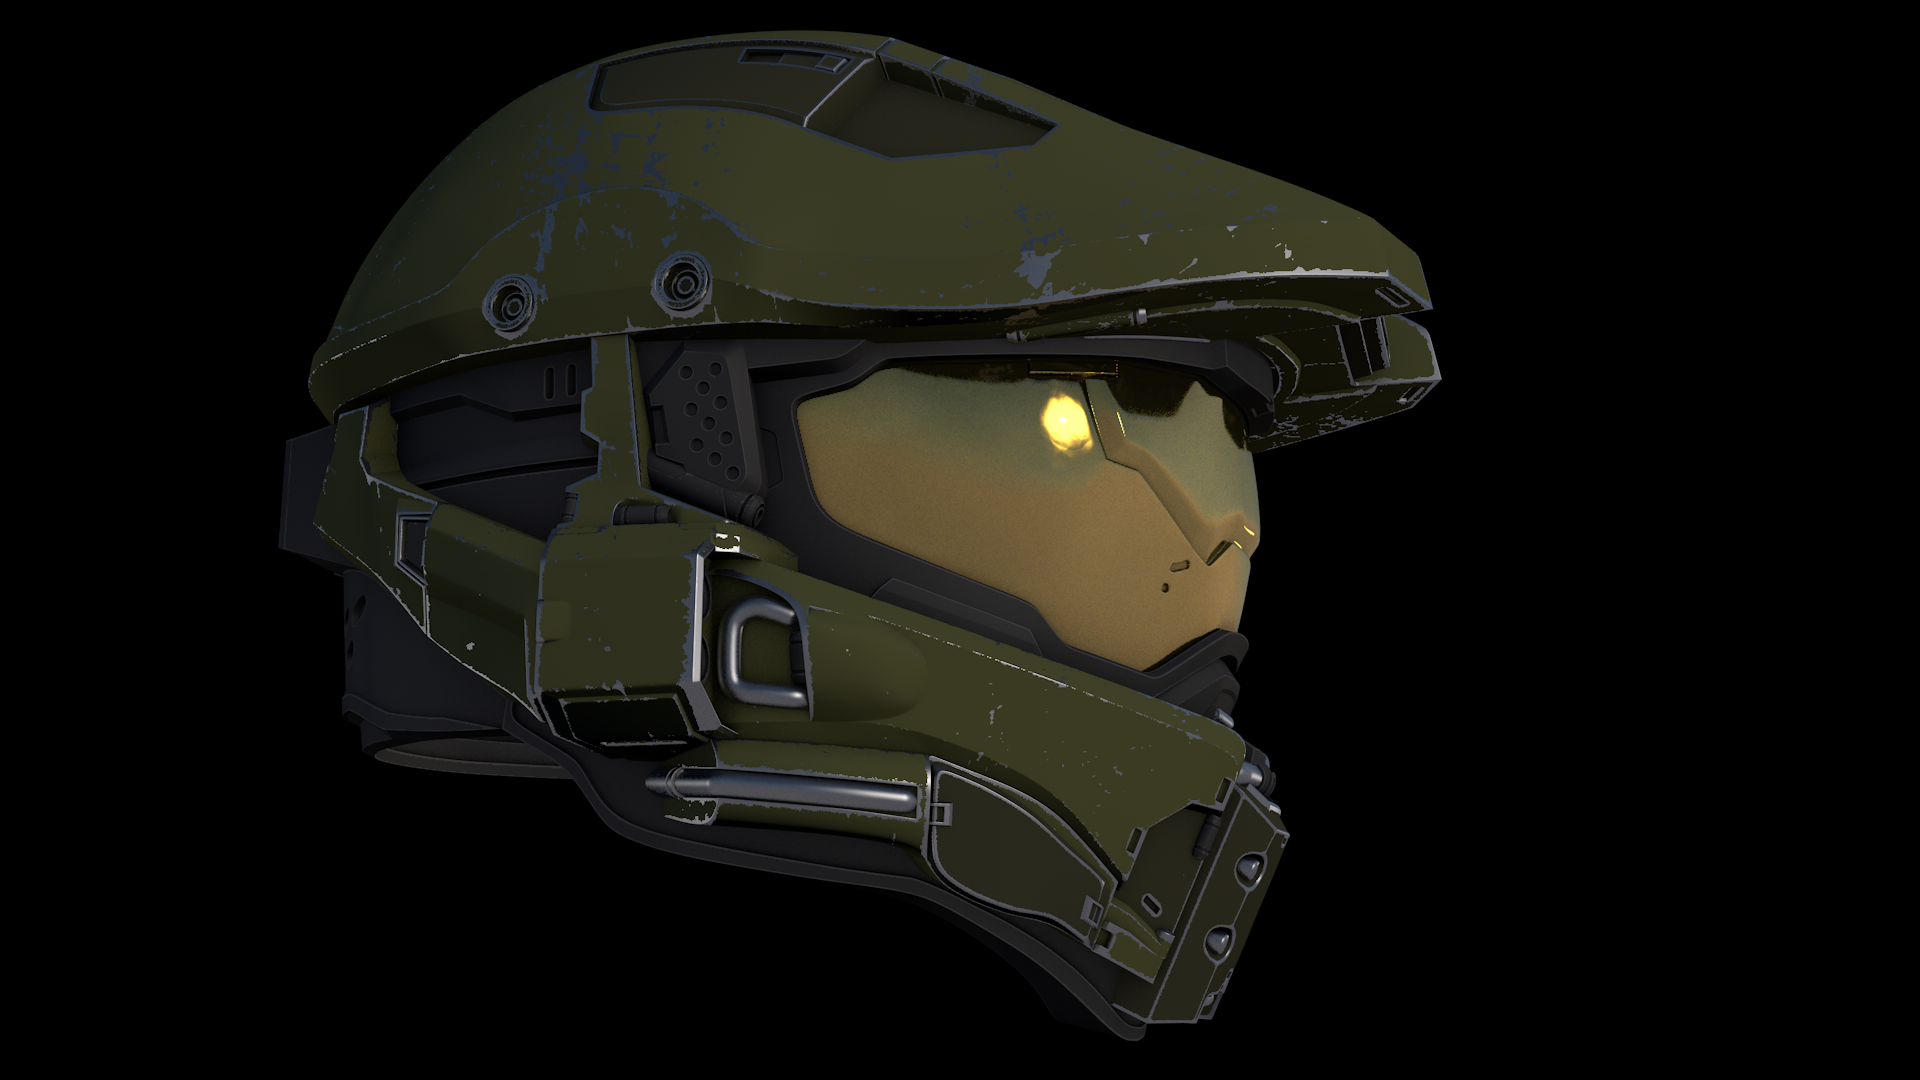 Halo 4 master chief helmet 5.png